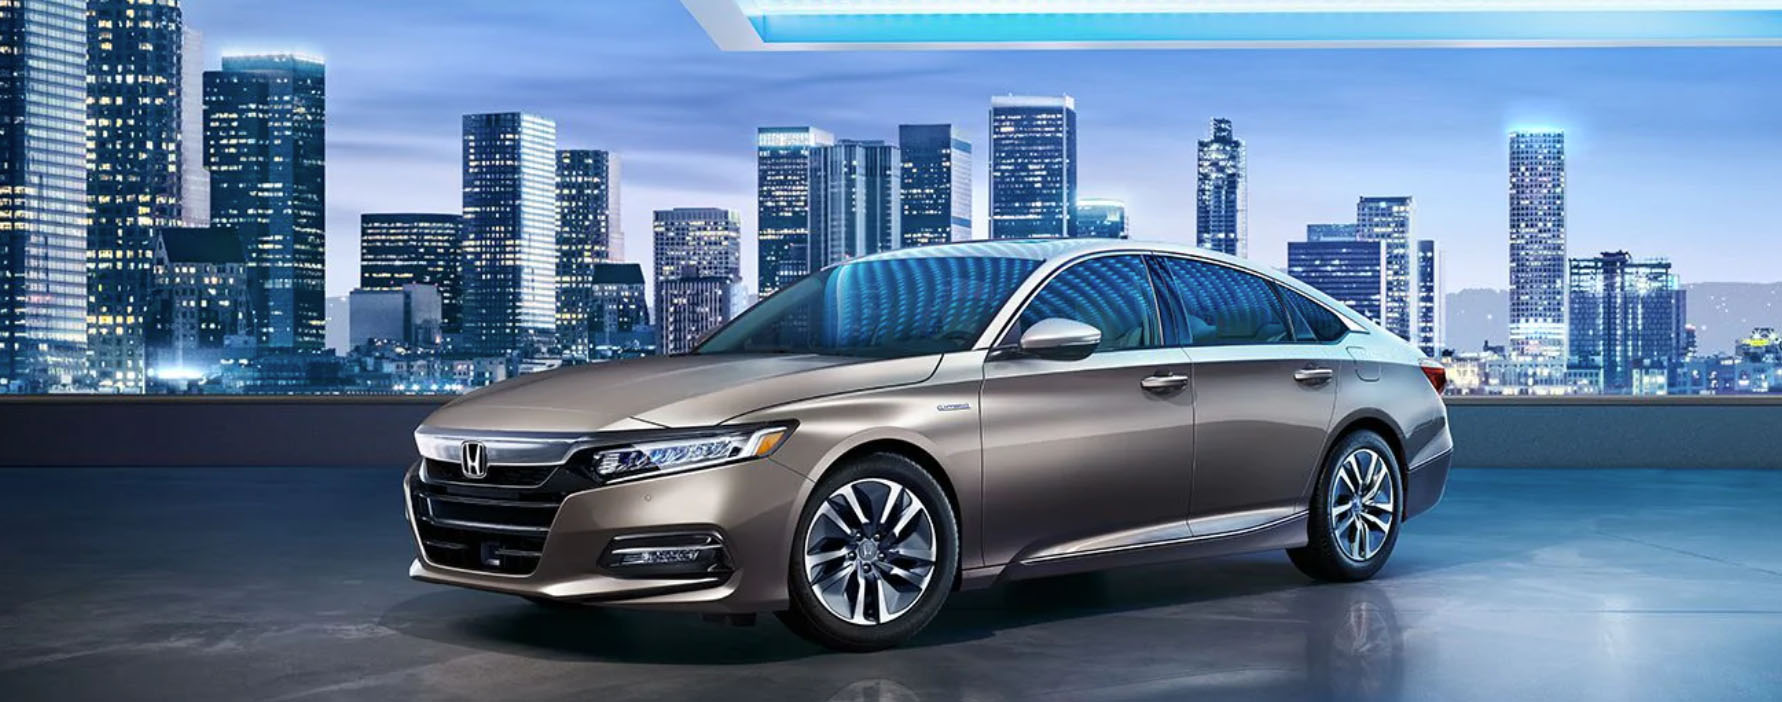 2020 Honda Accord For Sale in Murray